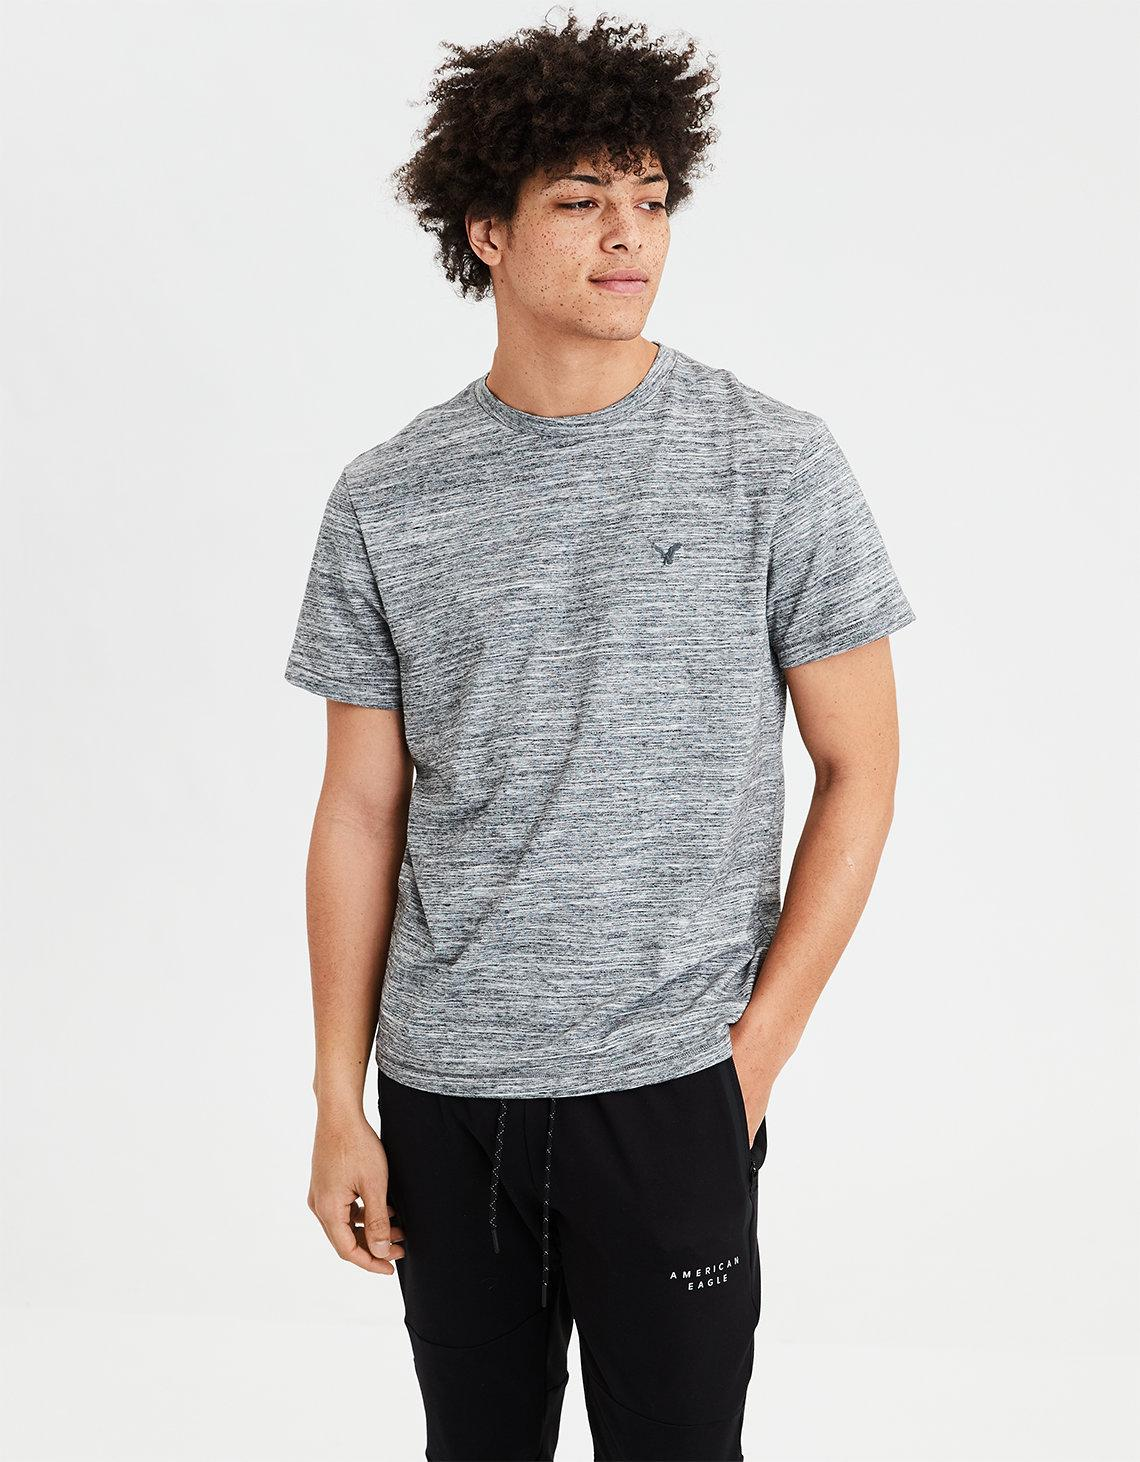 5e59cc4d6d35 American Eagle Ae Heathered Flex T-shirt in Gray for Men - Lyst